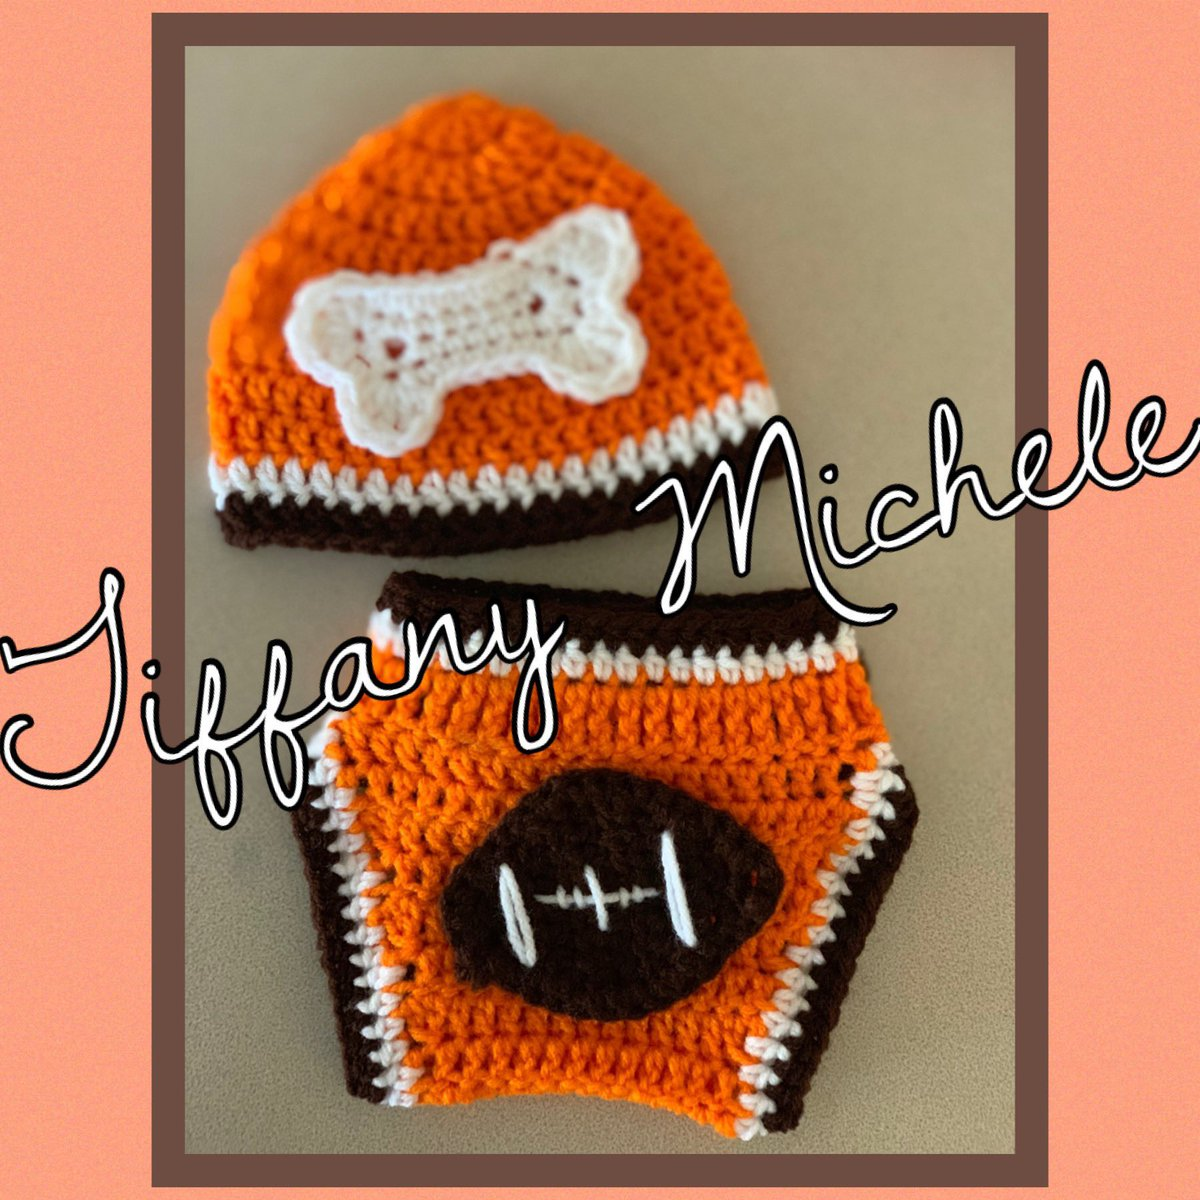 RT. Crochet Football Sports Gift Set. Cool outfit for babies. All baby sizes available at http://KARDSandGifts.Etsy.com. Shop today. #baby #handmade #crochet #clevelandbrowns #browns #football #sports #cleveland #giftset #babyoutfit #outfitpic.twitter.com/dgKn7tqW2U